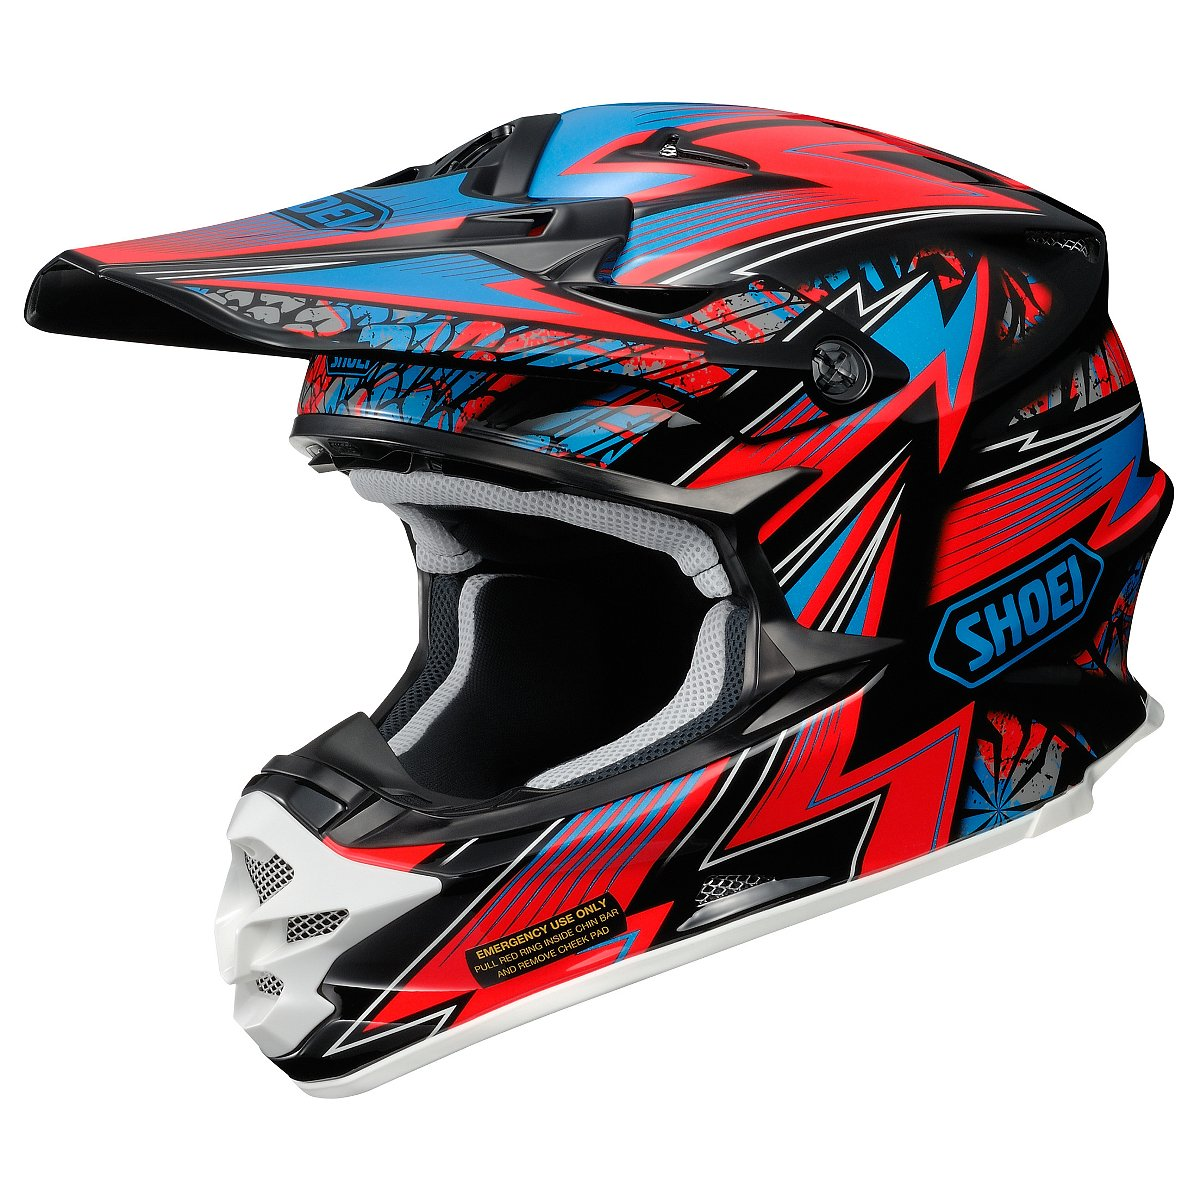 shoei vfx w maelstrom tc 1 helmet red black sixstar racing. Black Bedroom Furniture Sets. Home Design Ideas